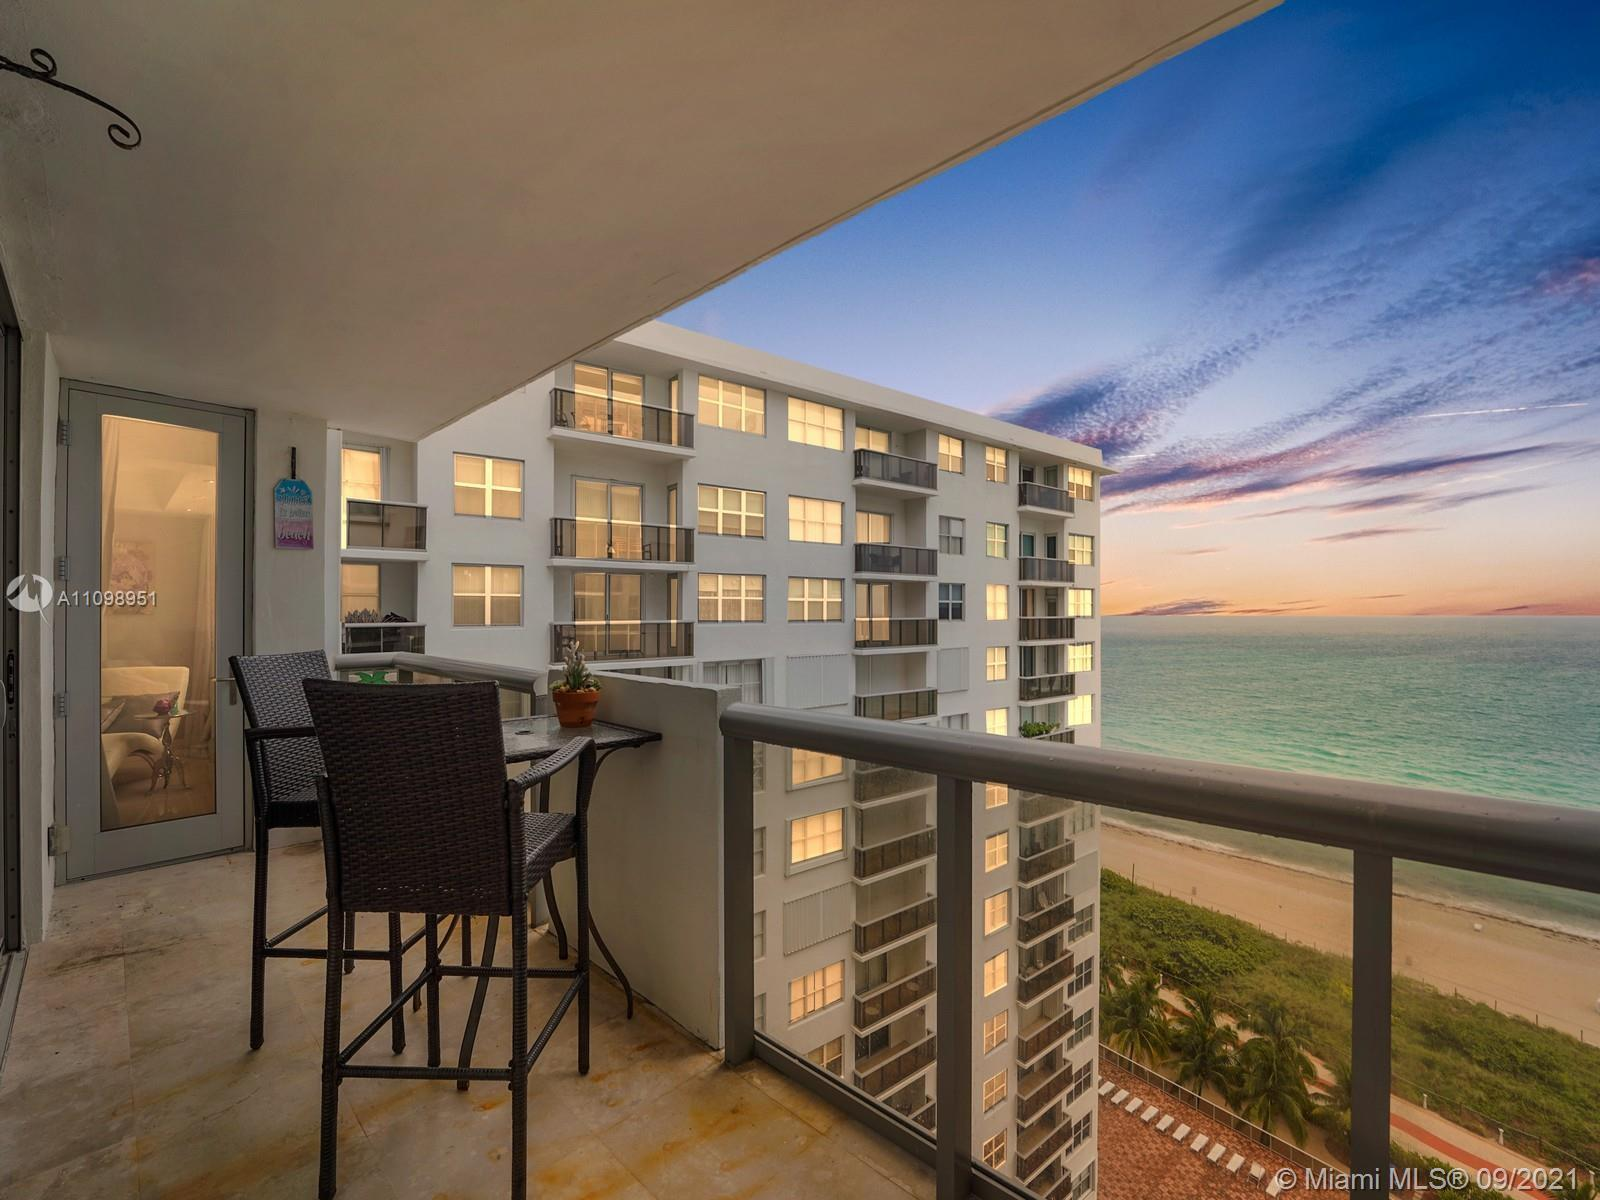 DIRECT Ocean view from this north east unit. BREATH talking sunrise 2 /2 Completely REDONE 2016/ / (